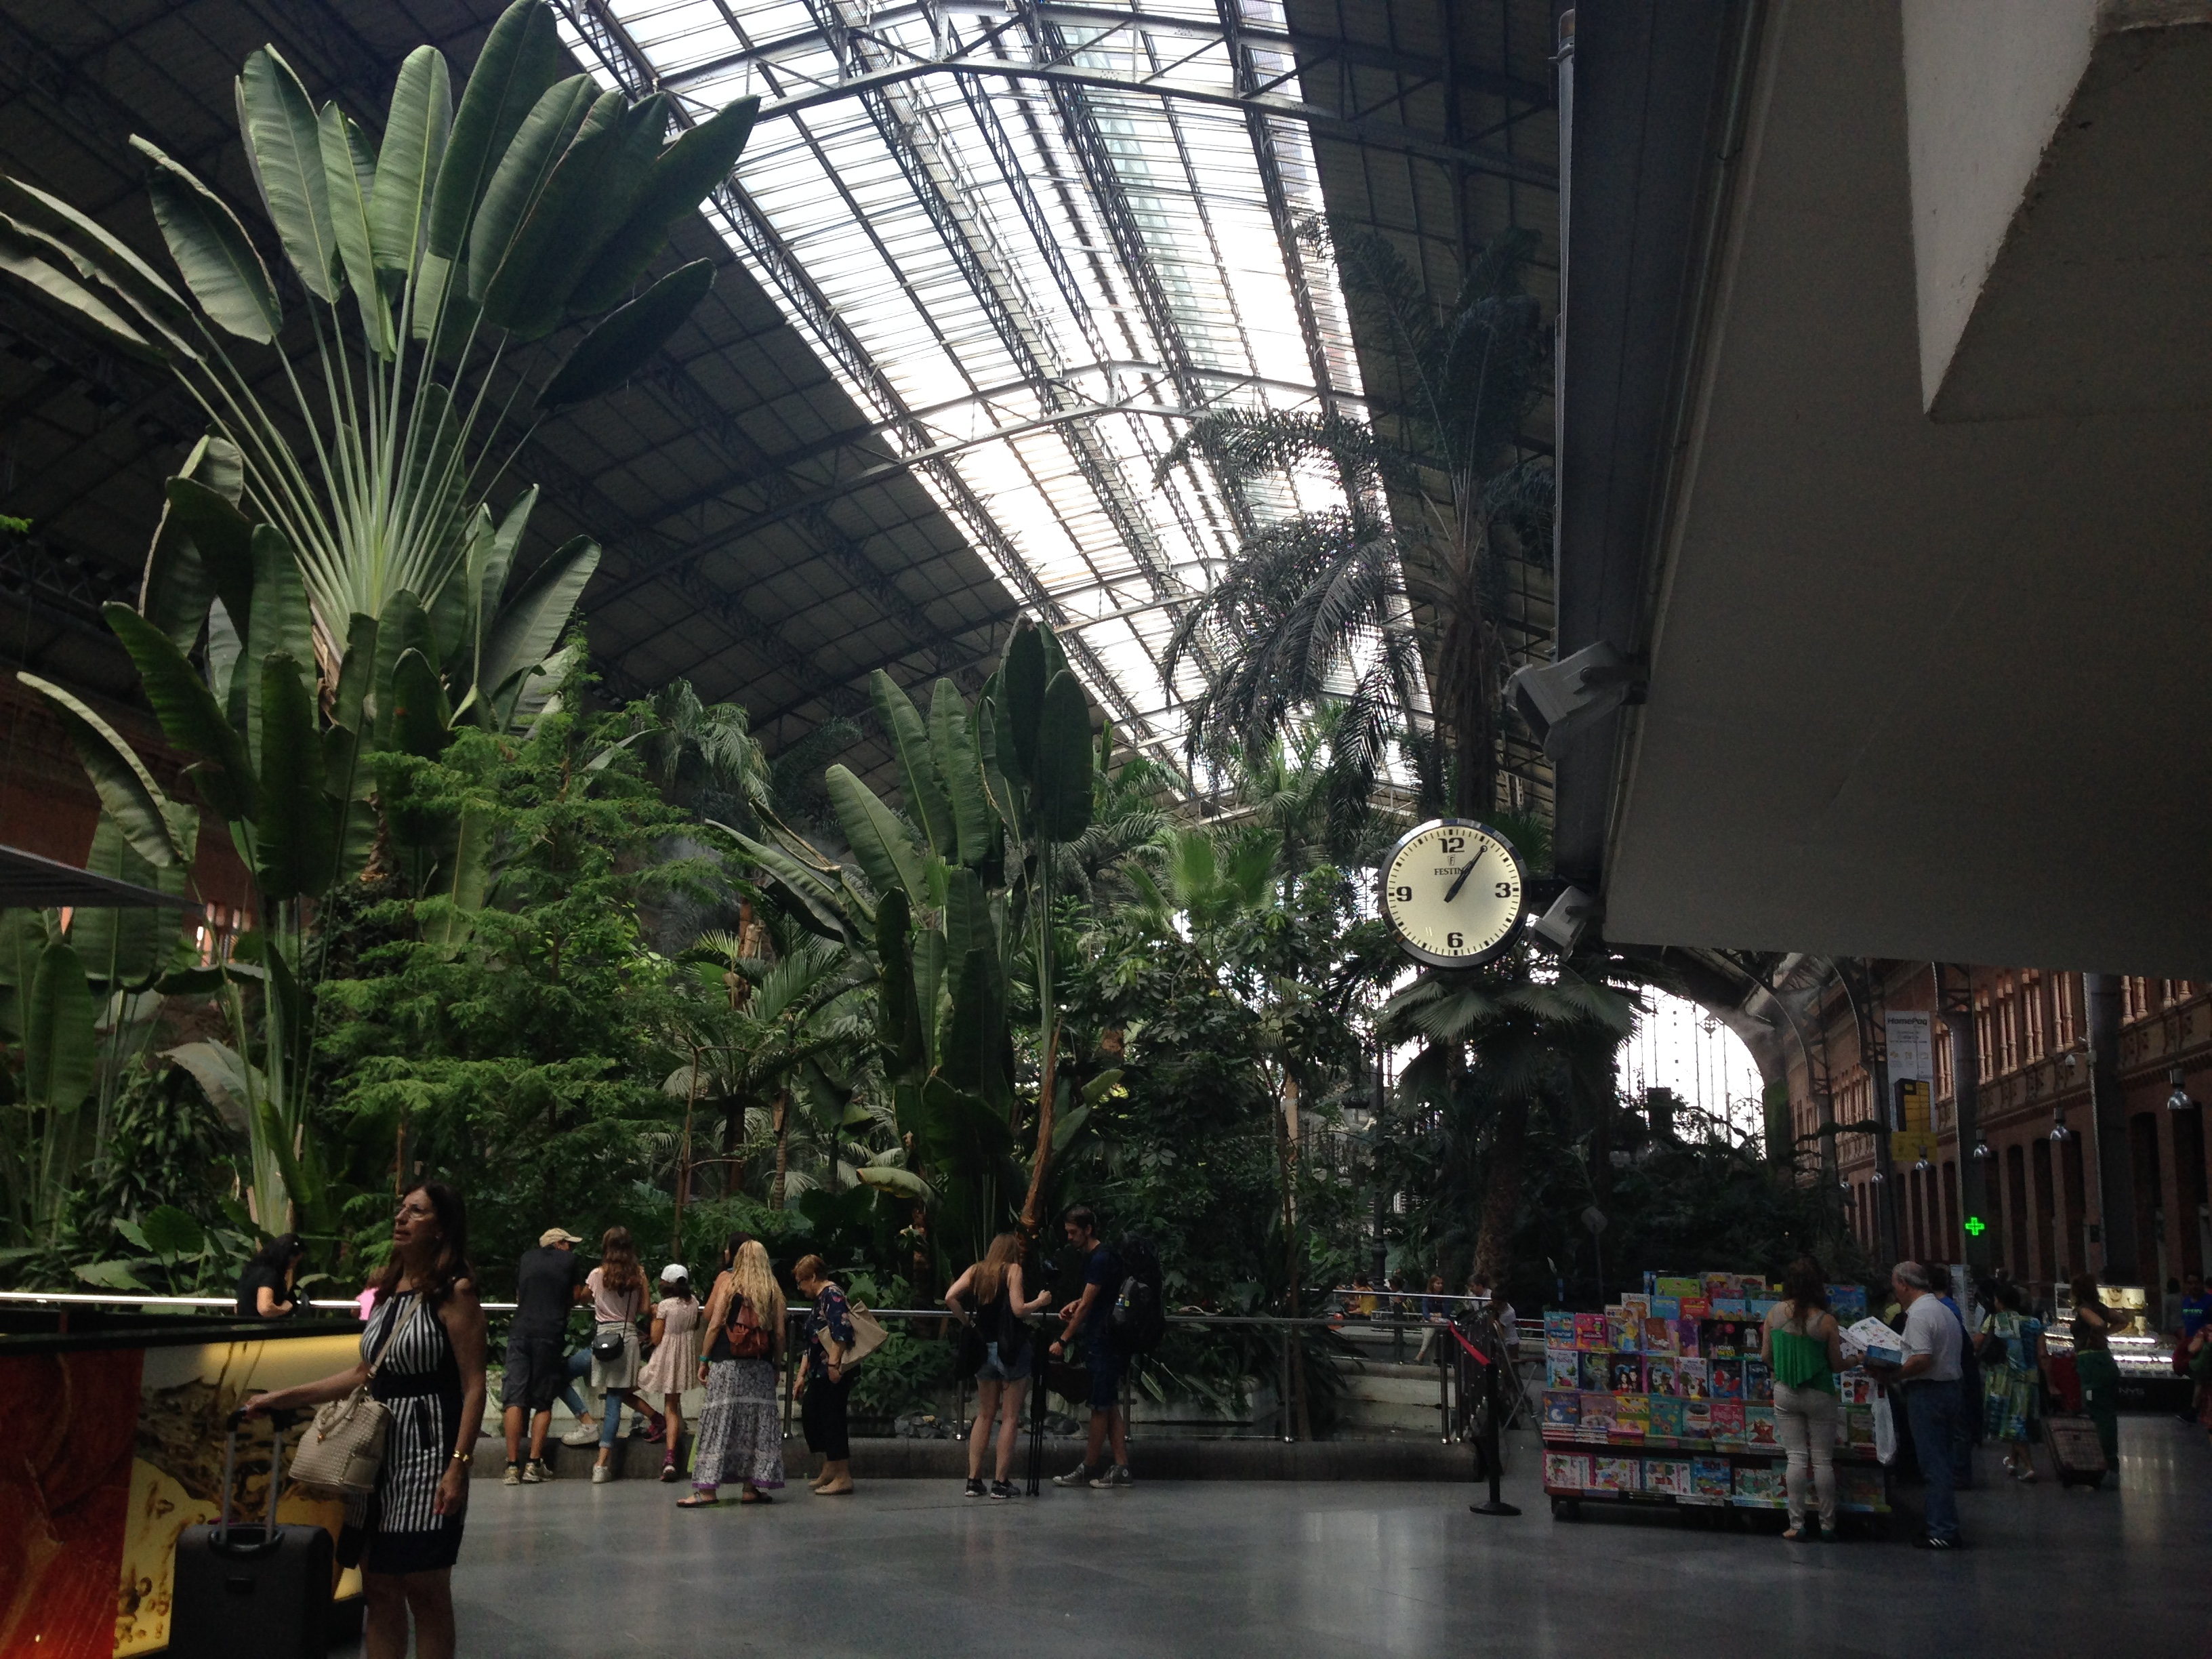 Garden inside of Atocha train statio